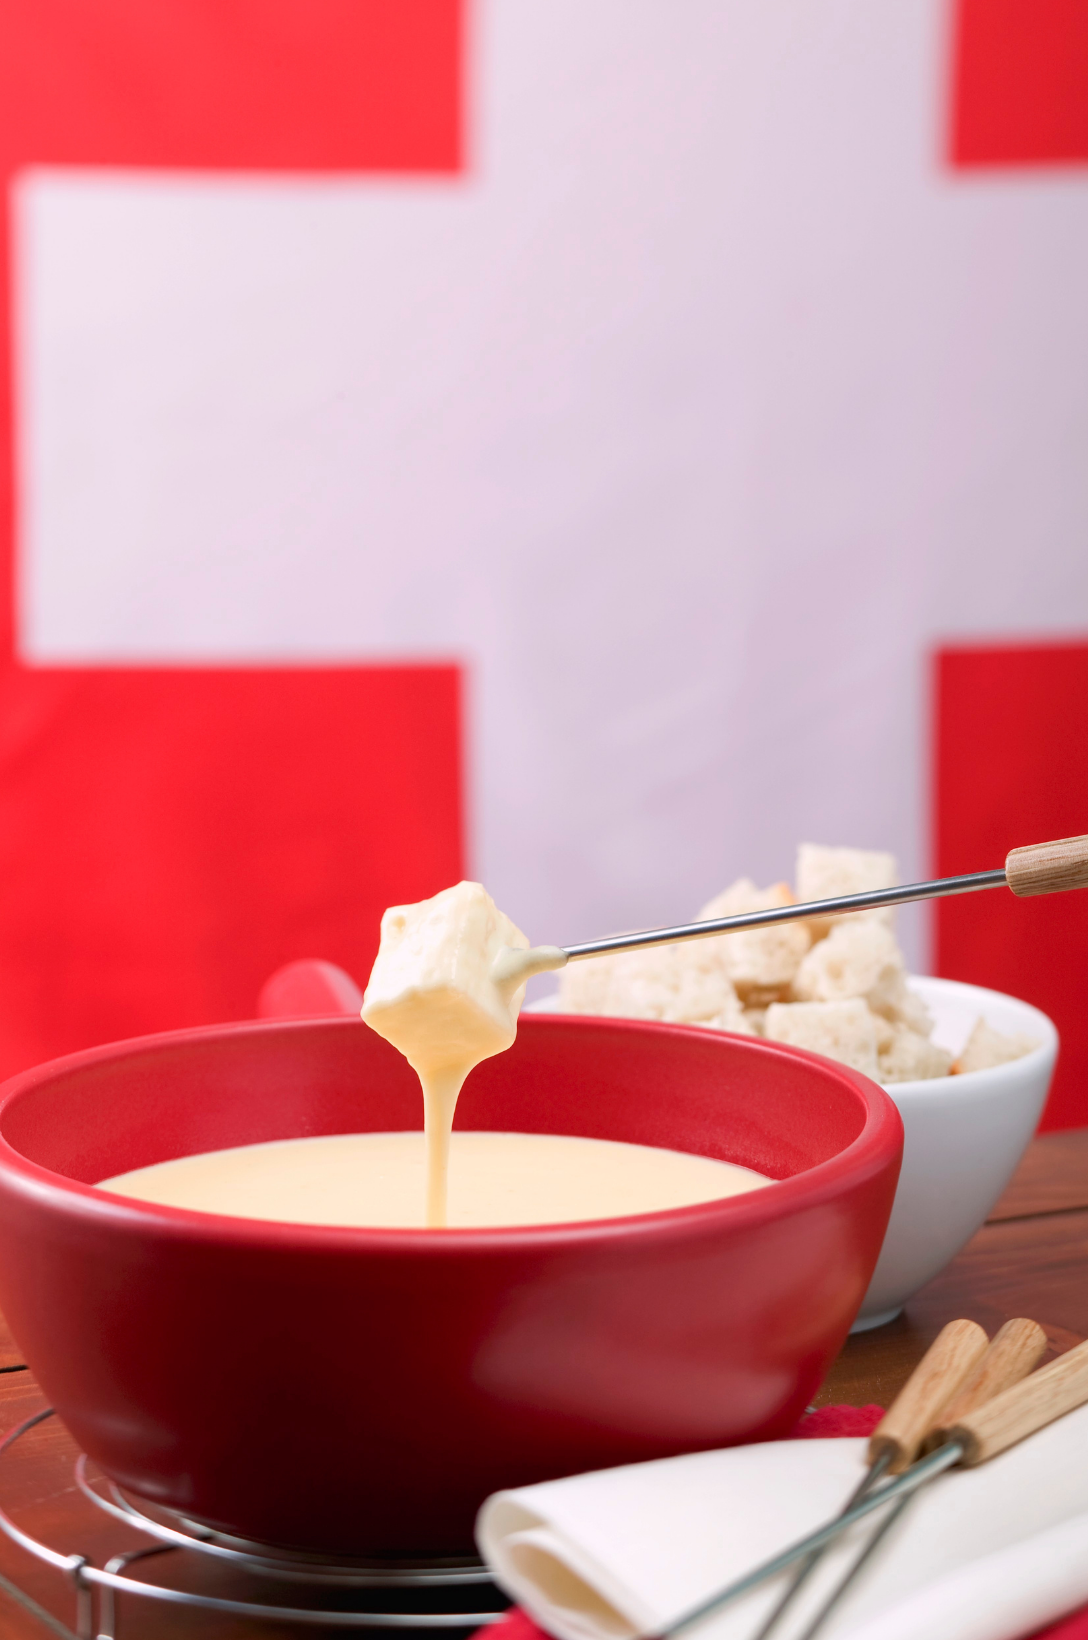 Fondue - our take on classic Swiss, French and Italian Specialties